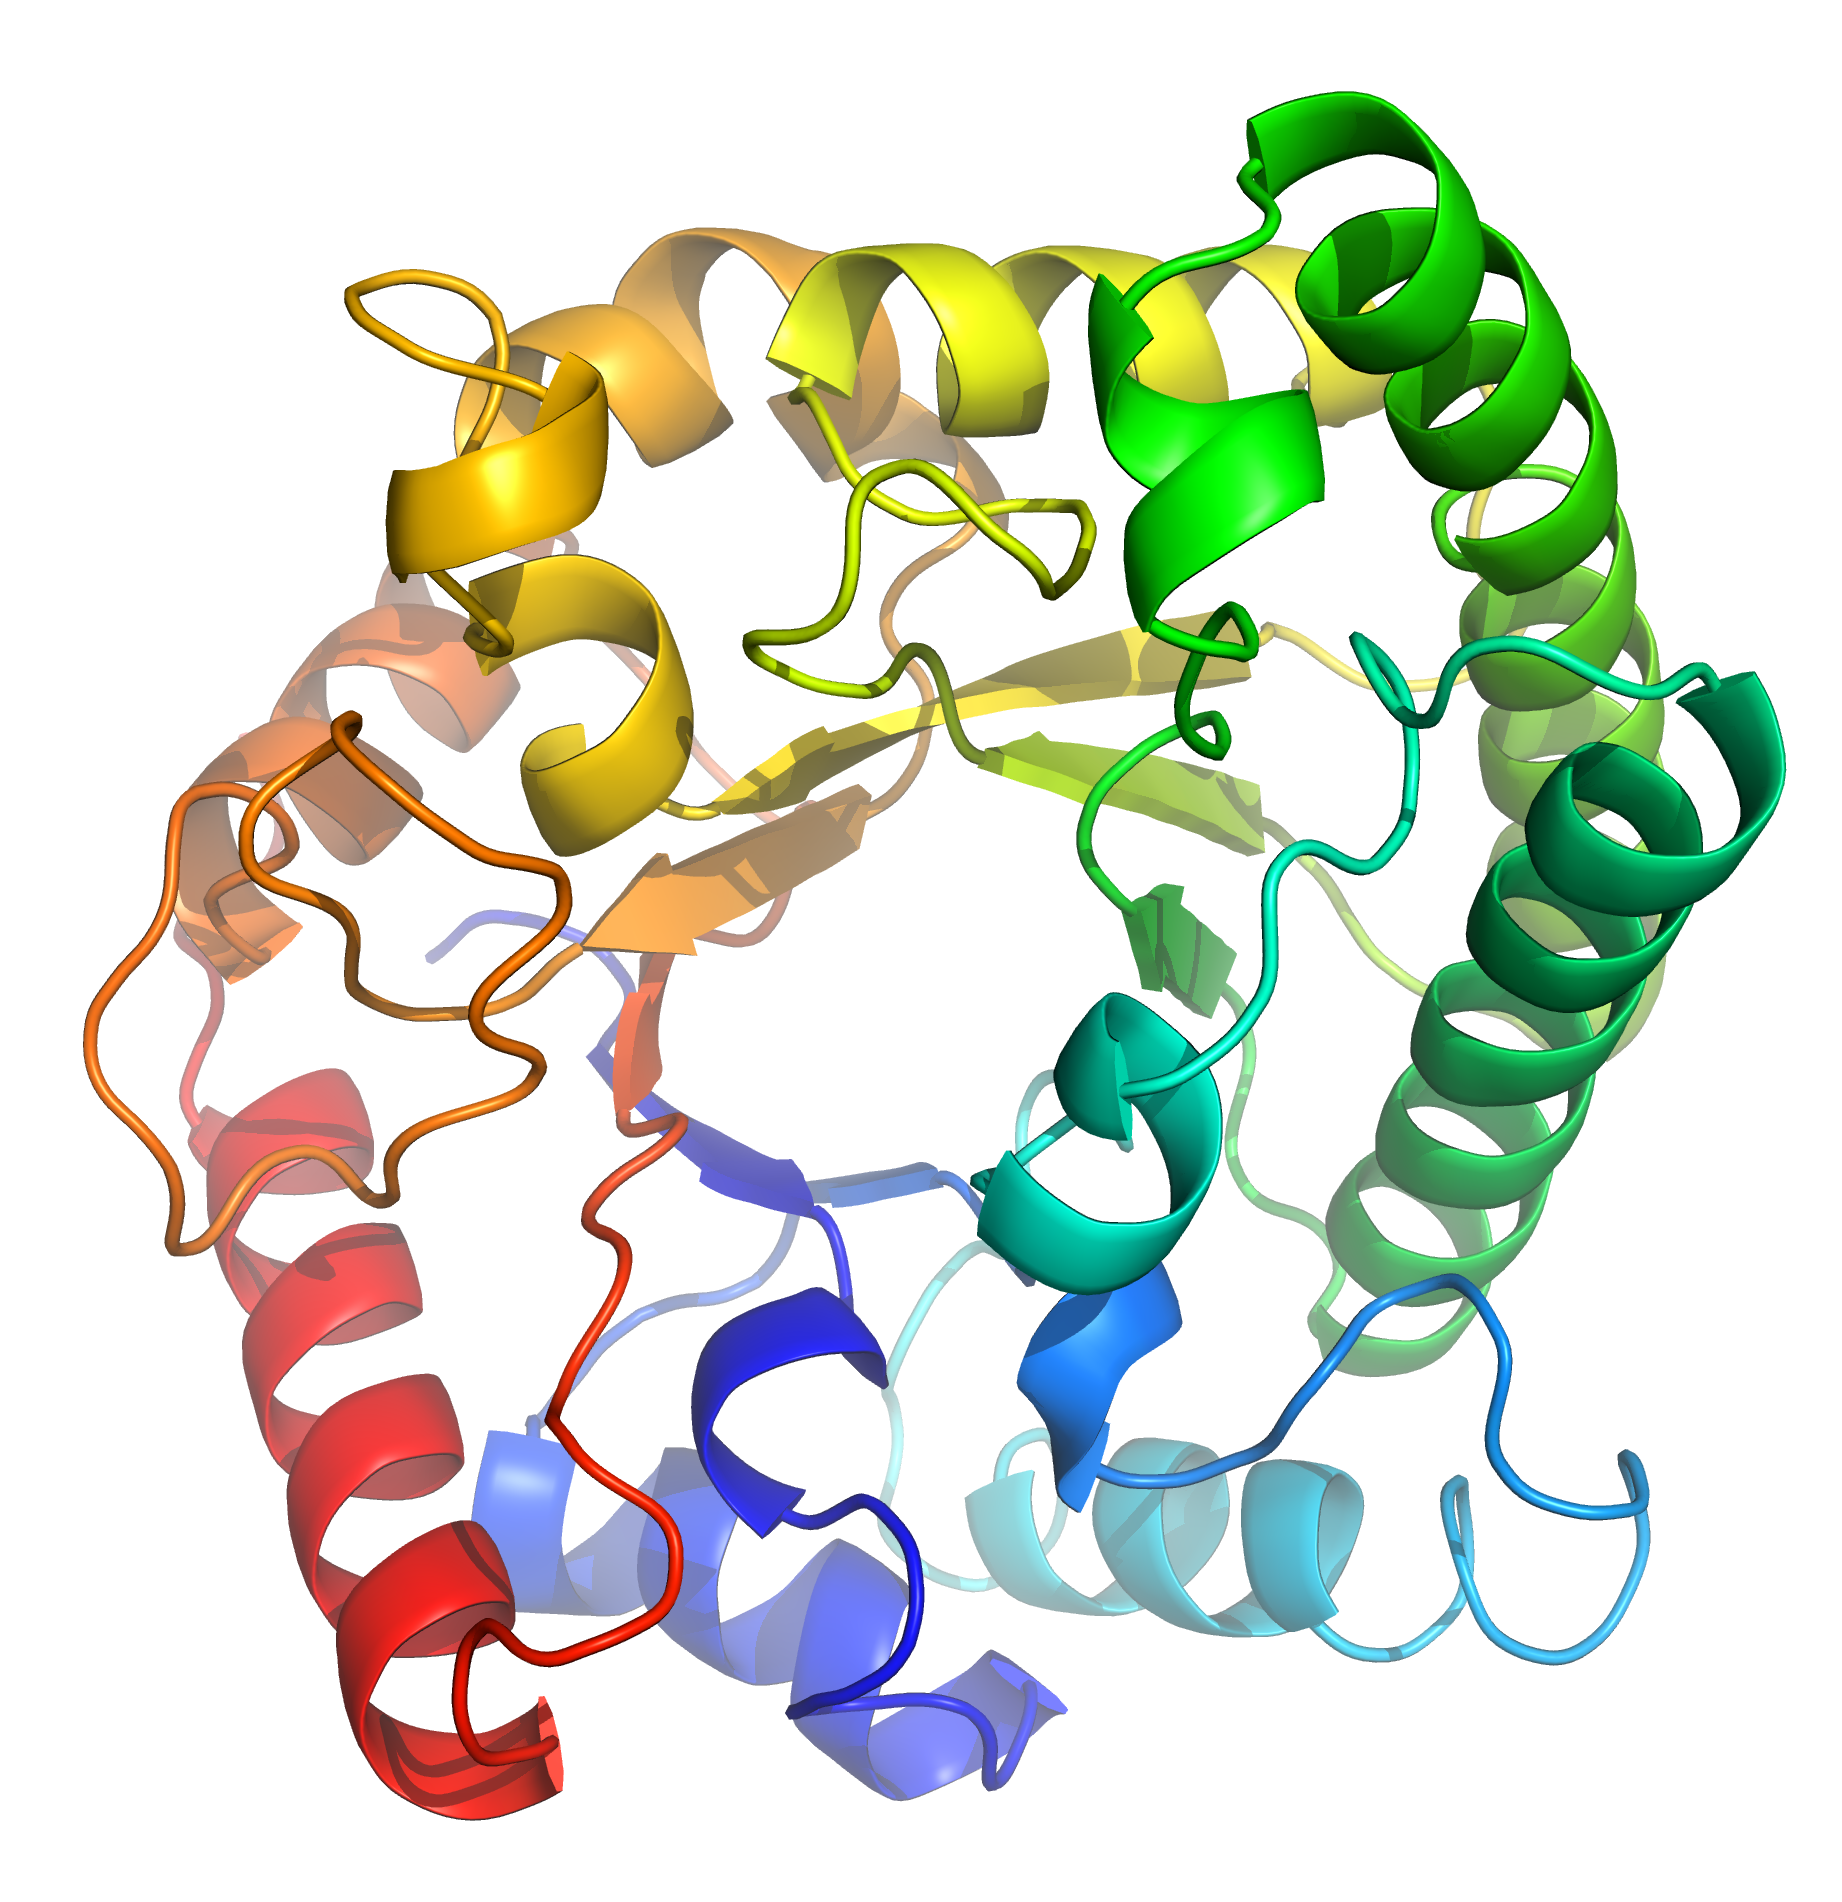 Protein has seven functions that distinguish from other